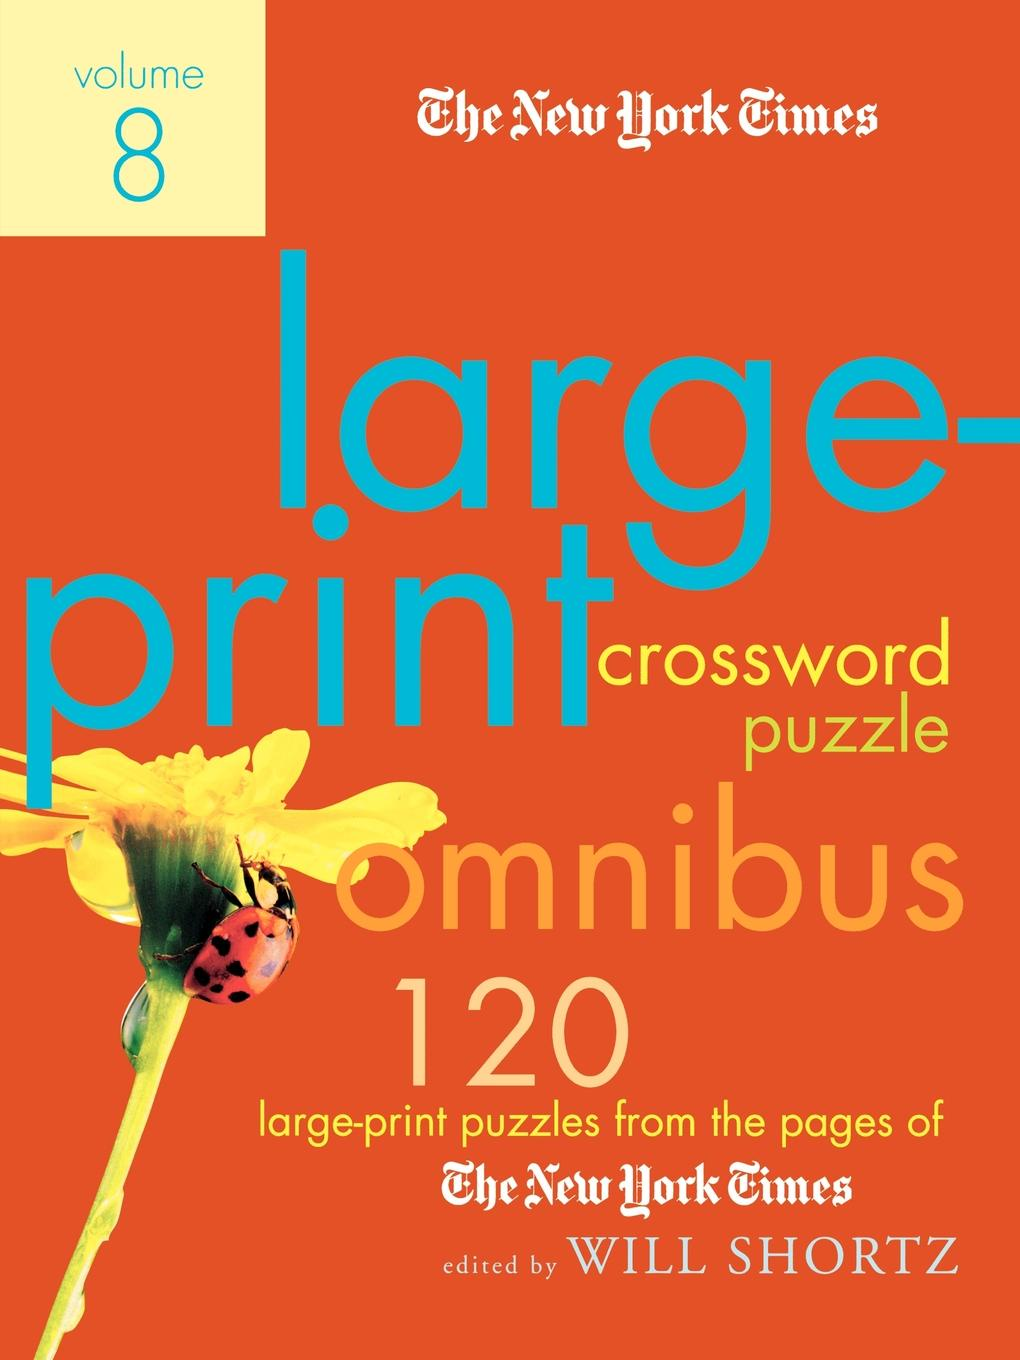 The New York Times Large-Print Crossword Puzzle Omnibus, Volume 8. 120 Large-Print Puzzles from the Pages of the New York Times цена